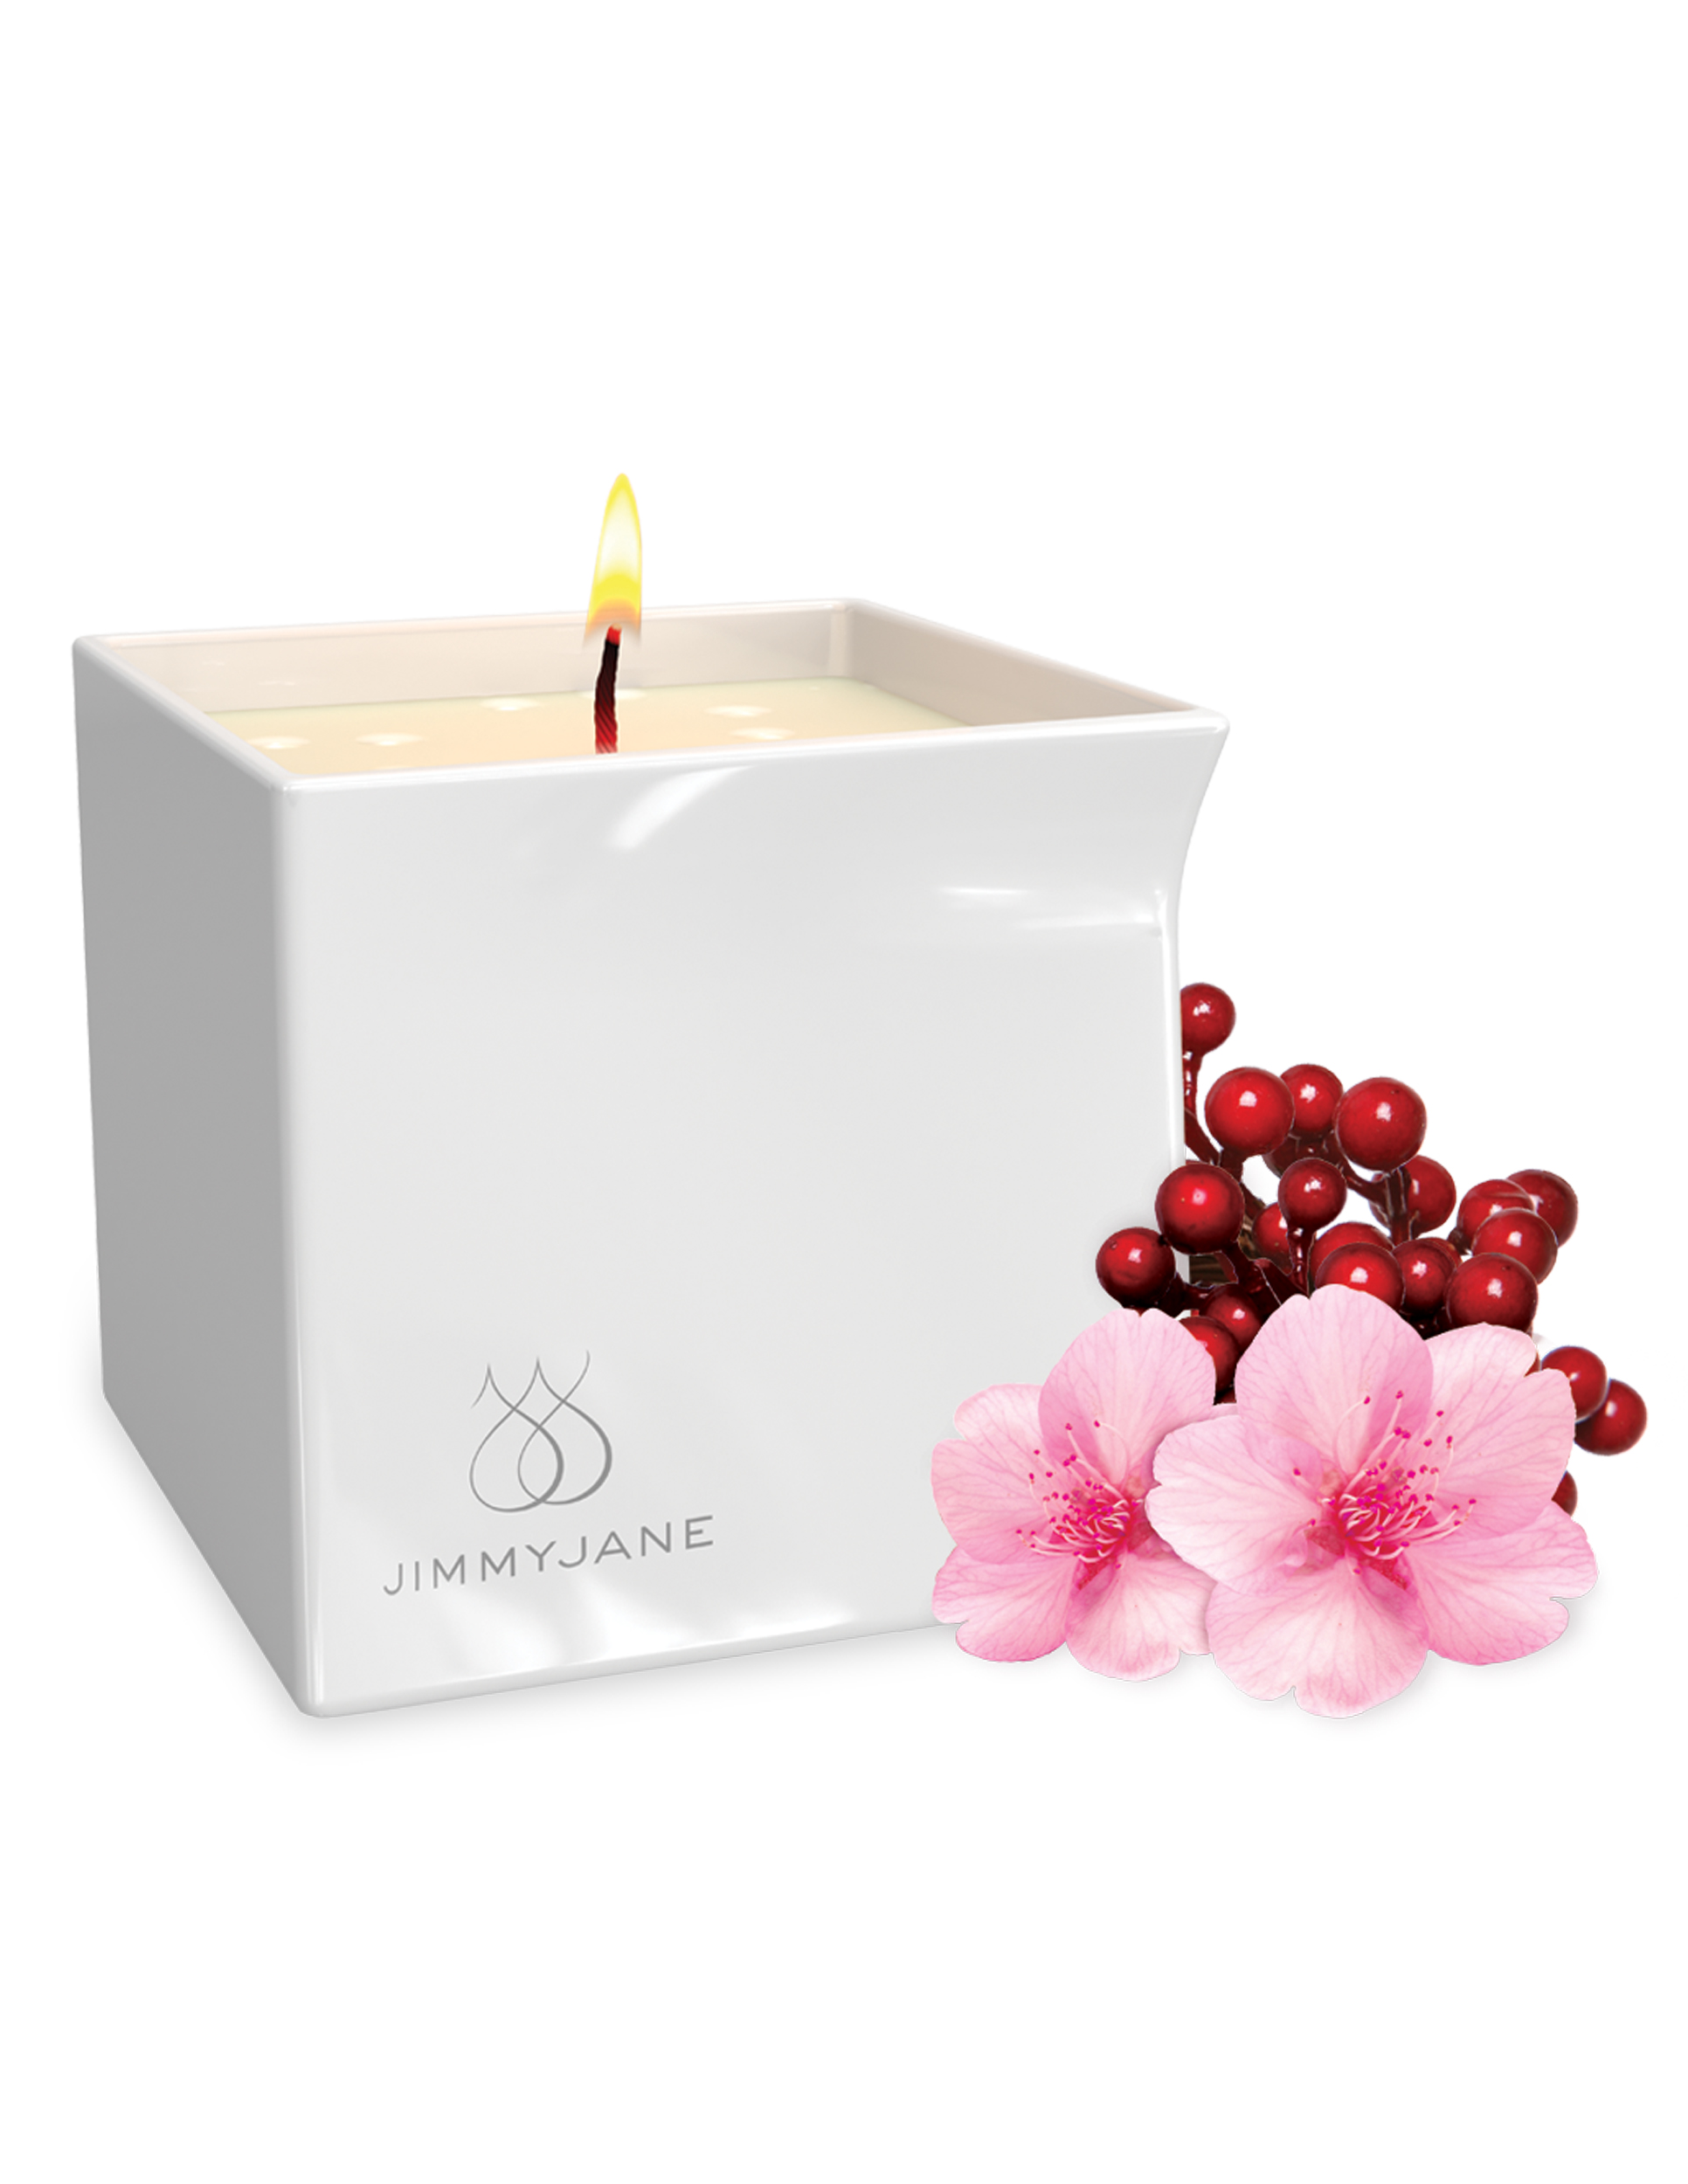 Pipedream Jimmyjane Afterglow Massage Candle Berry Blossom JJ11739-01 603912754995